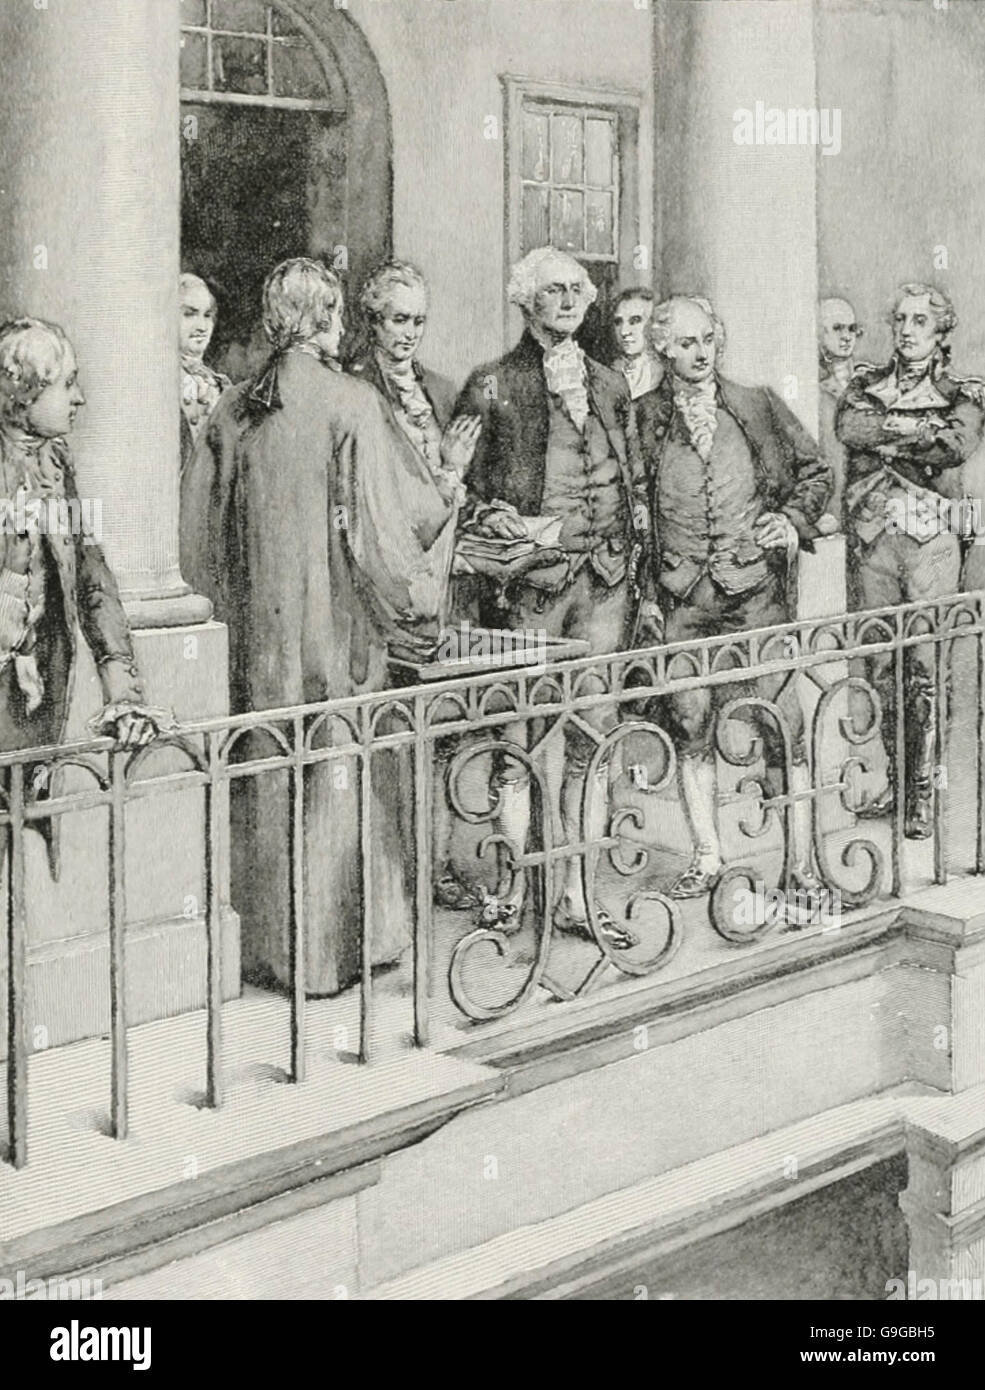 George Washington taking the oath as President, New York City, 1789